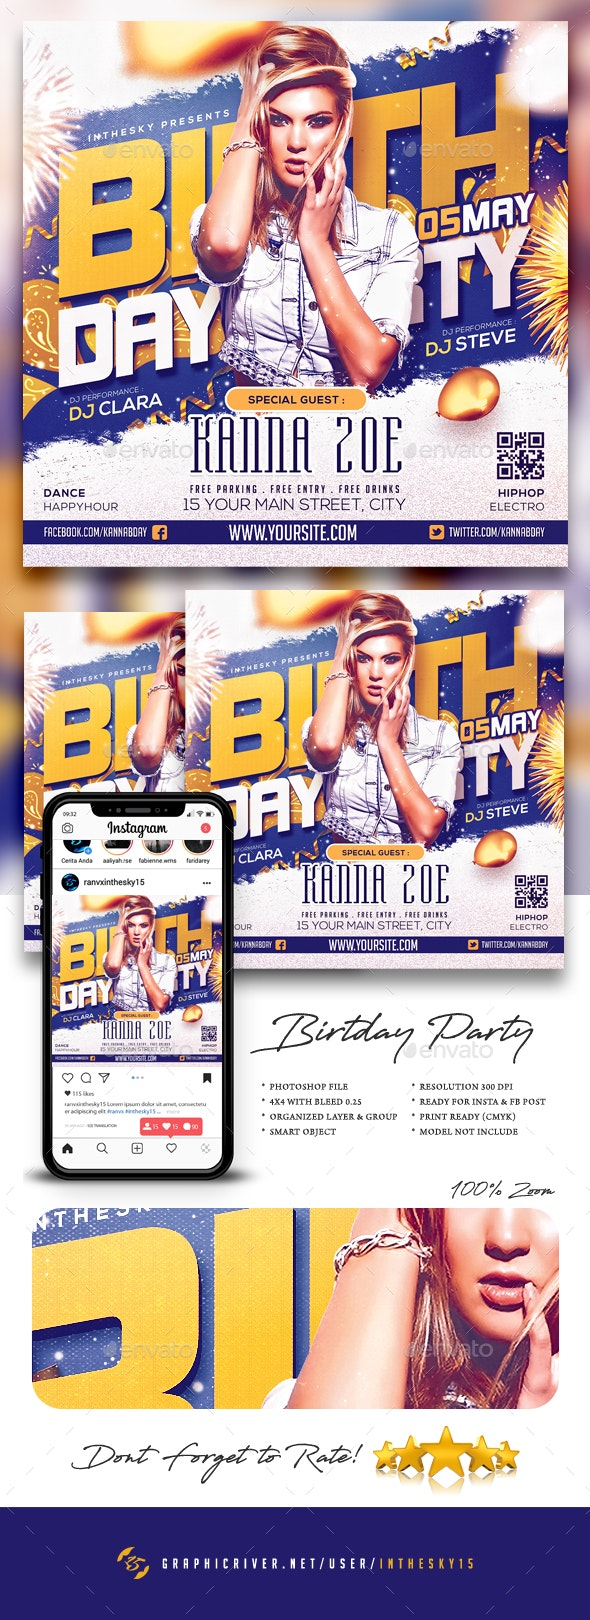 Birthday Party Flyer - Clubs & Parties Events